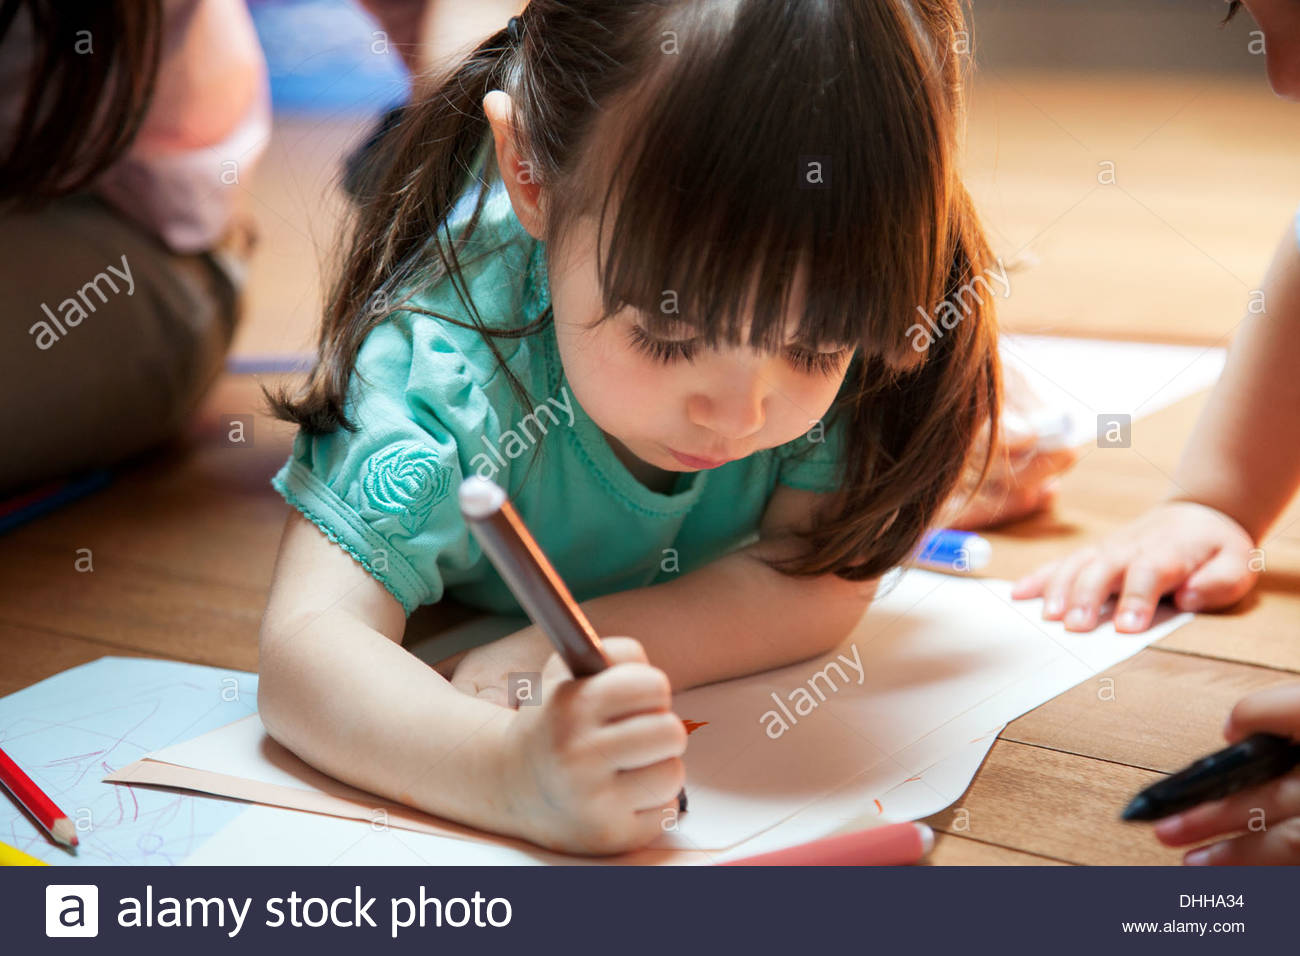 Girl lying on floor drawing - Stock Image